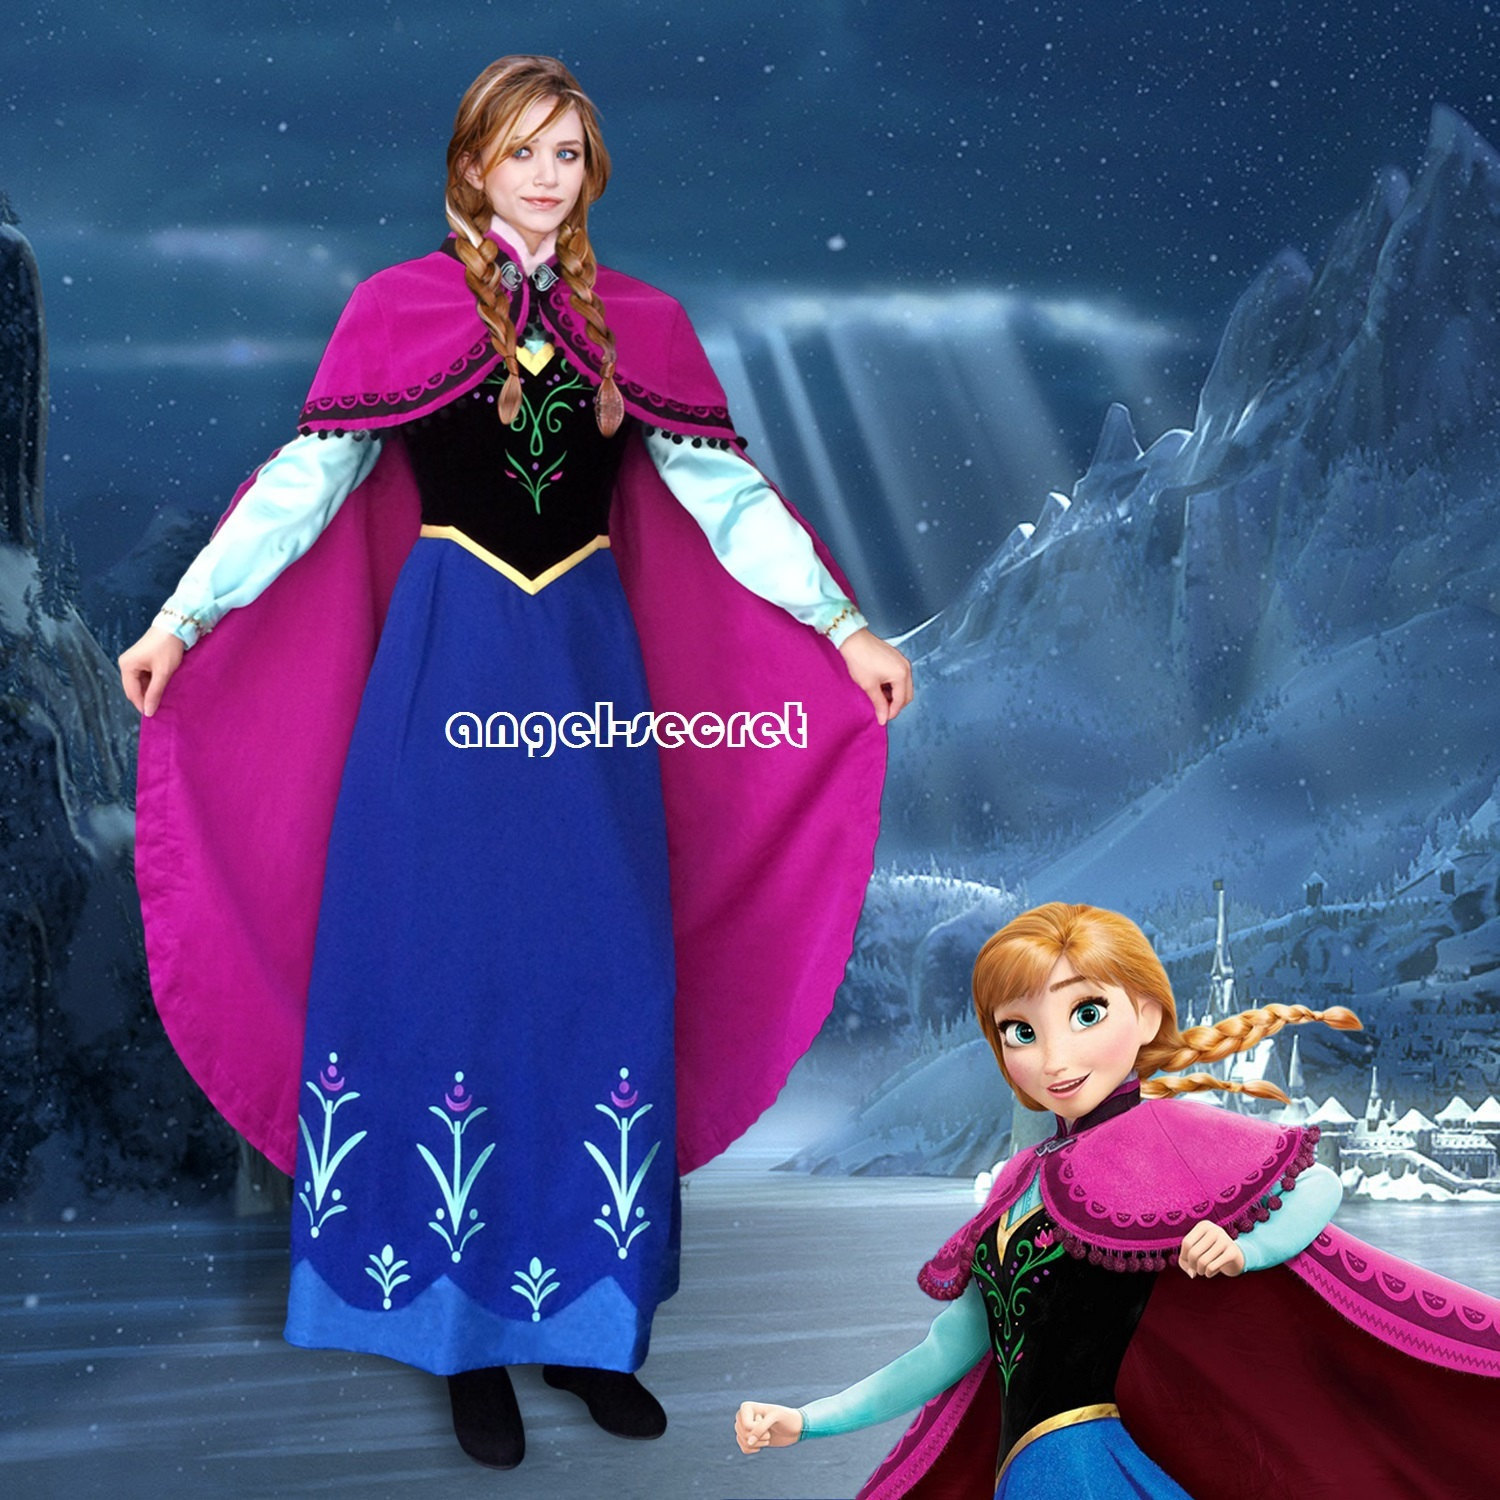 J787 [Adult] Movies Frozen princess ANNA Cosplay Costume Deluxe Dress tailor made adult party  sc 1 st  angel-secret - Storenvy & J787 [Adult] Movies Frozen princess ANNA Cosplay Costume Deluxe ...